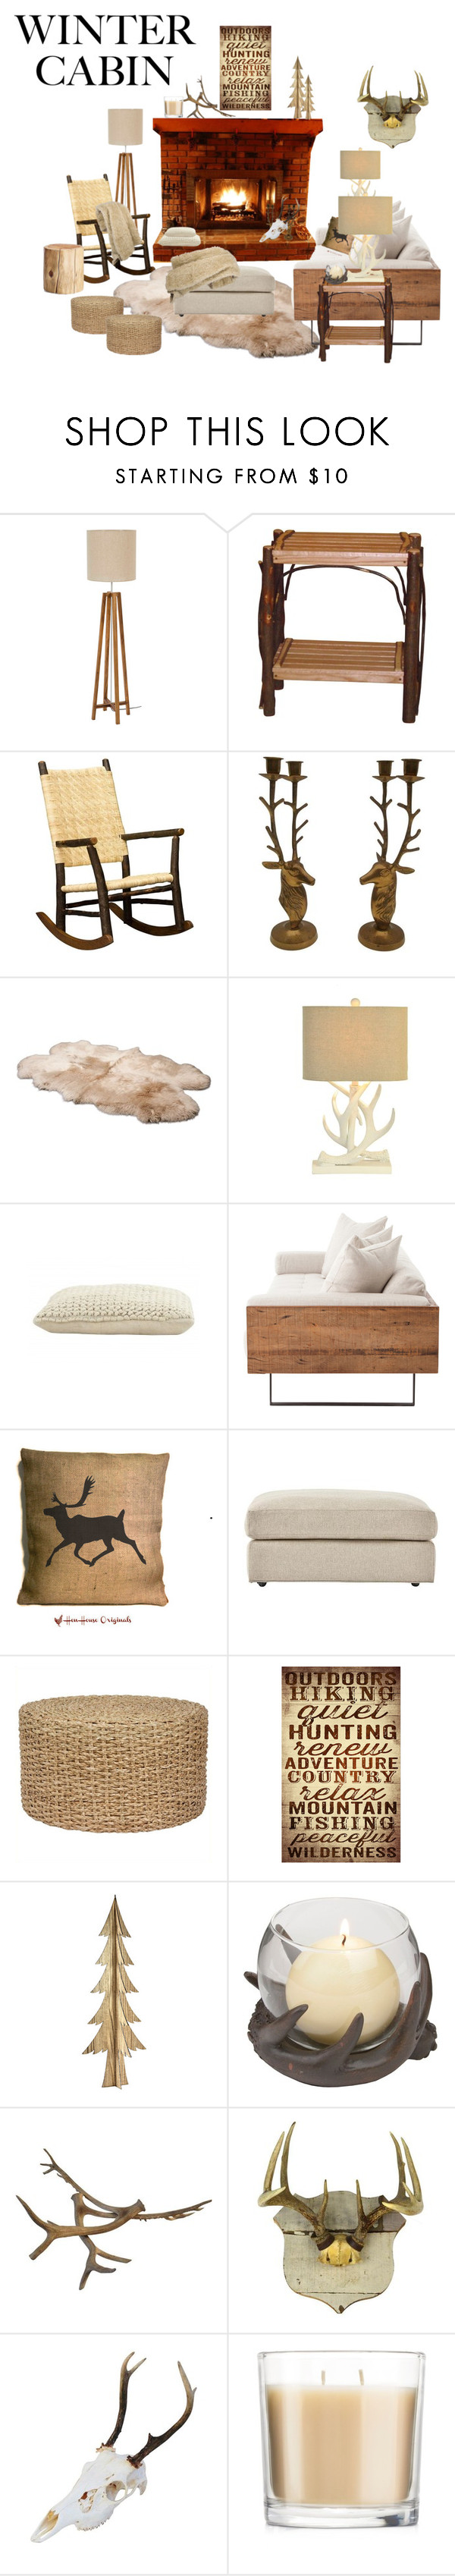 """Cozy Cabin Style"" by mhightower1011 ❤ liked on Polyvore featuring interior, interiors, interior design, home, home decor, interior decorating, DutchCrafters, UGG Australia, Jayson Home and Home Decorators Collection"